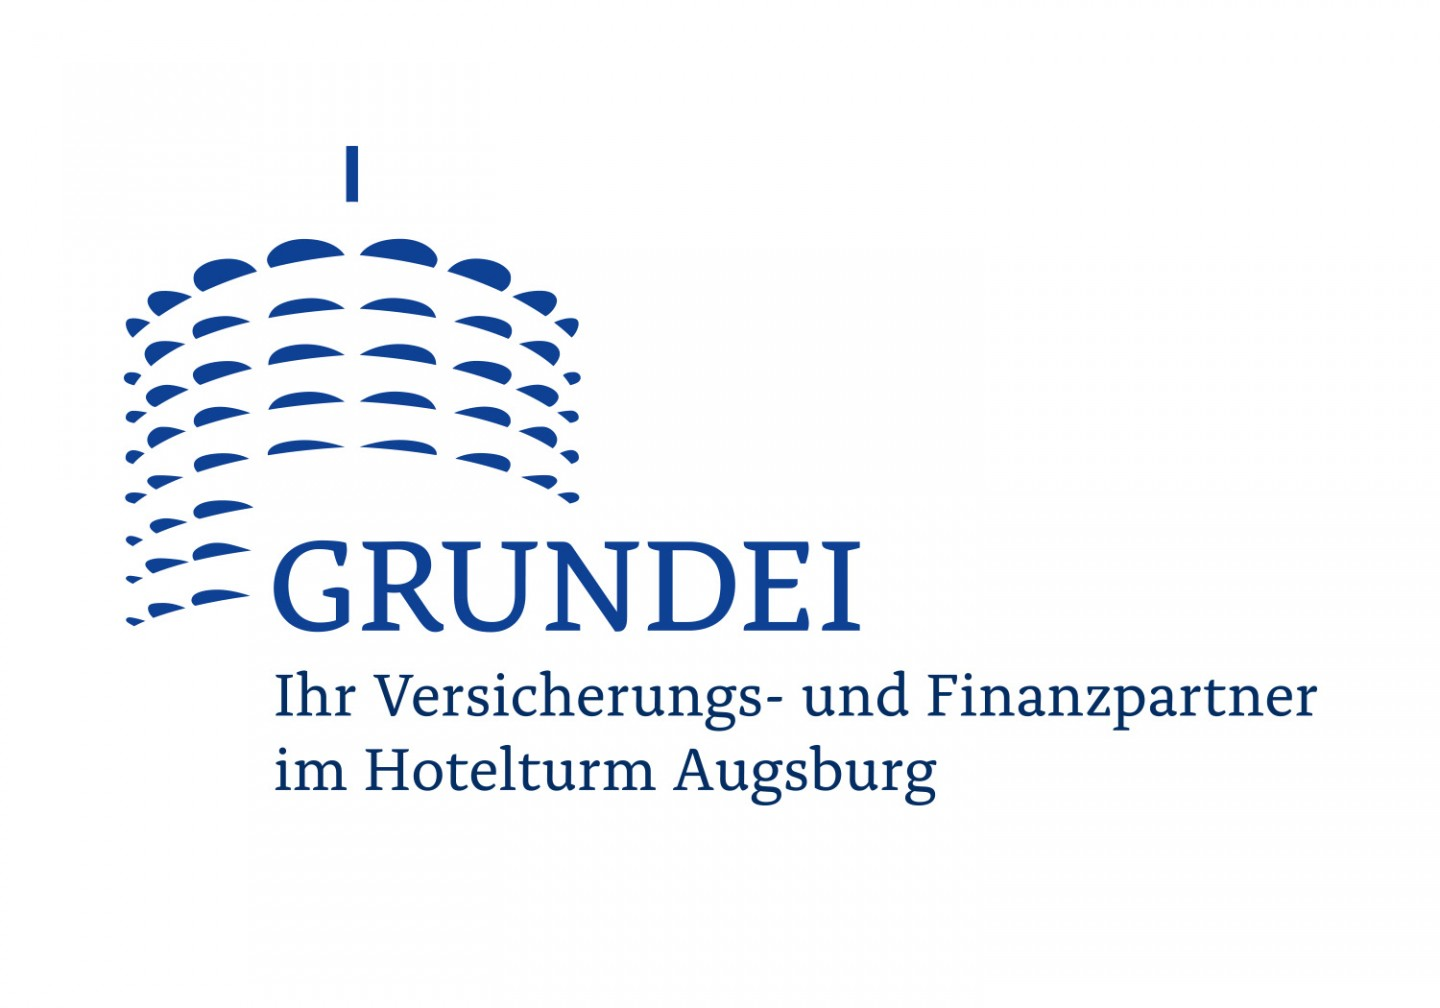 Generalagentur Grundei – Corporate Design